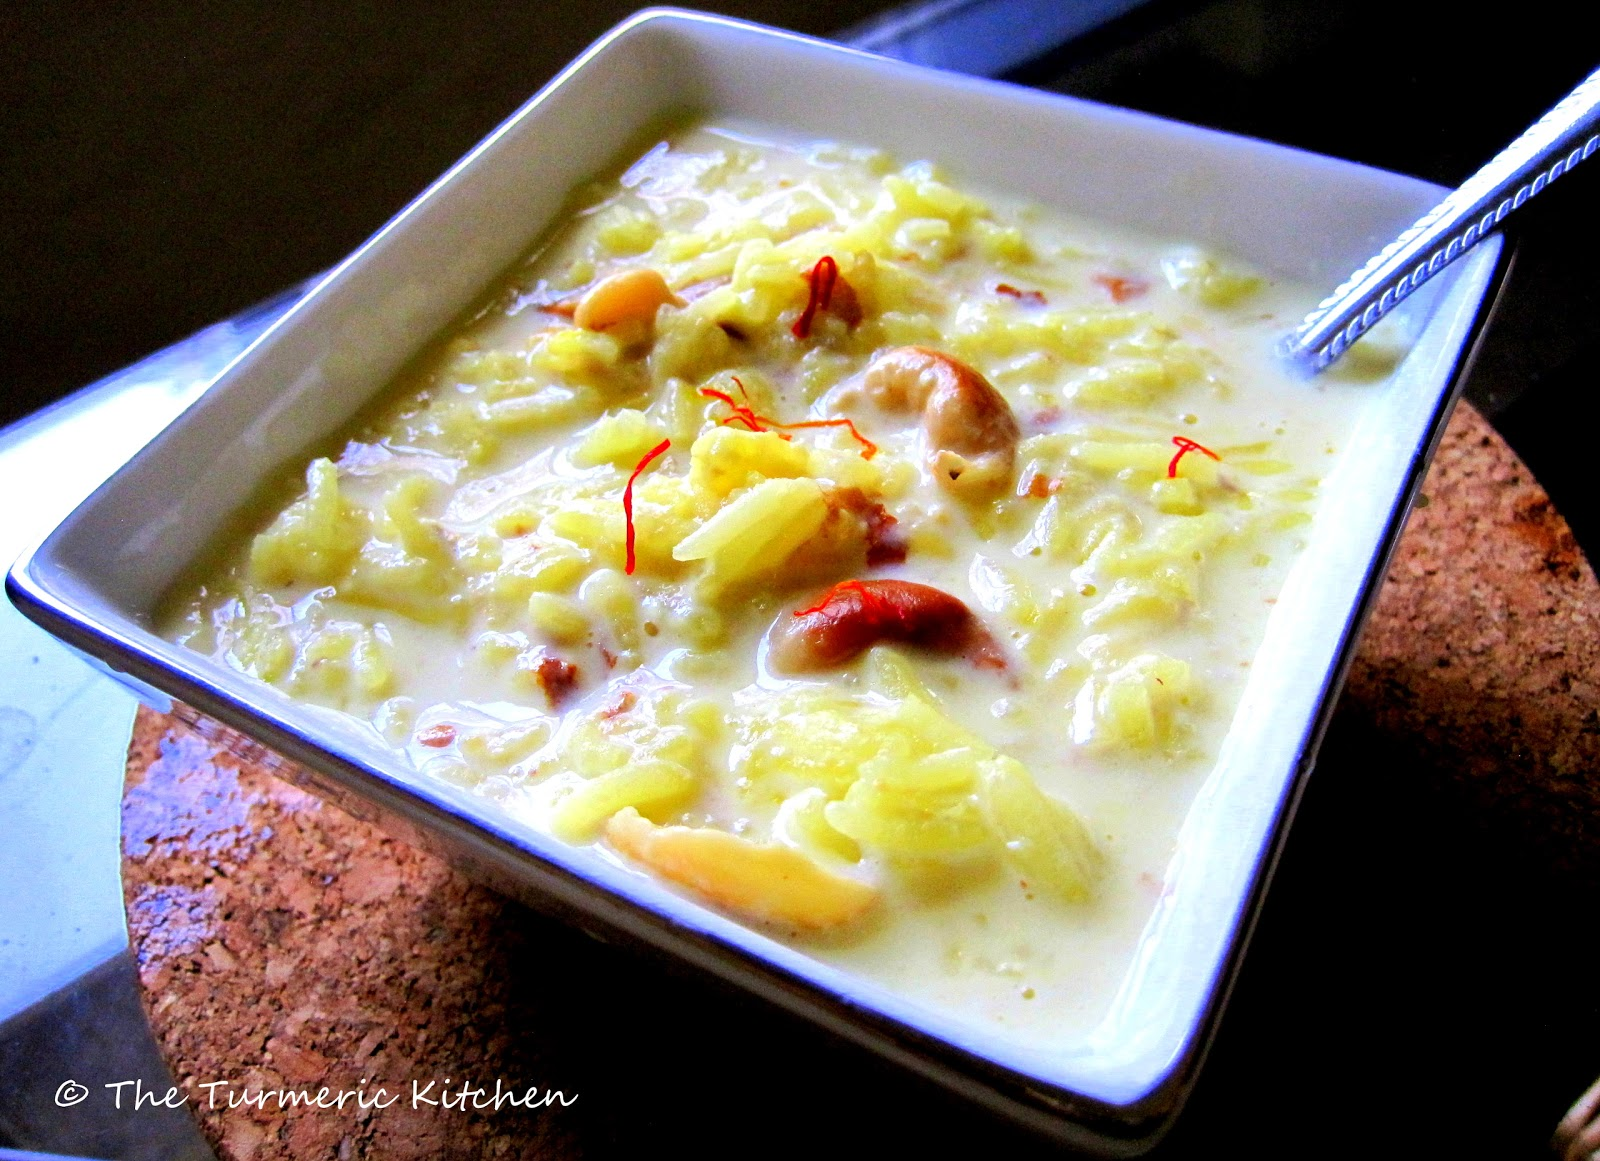 Odia rice pudding